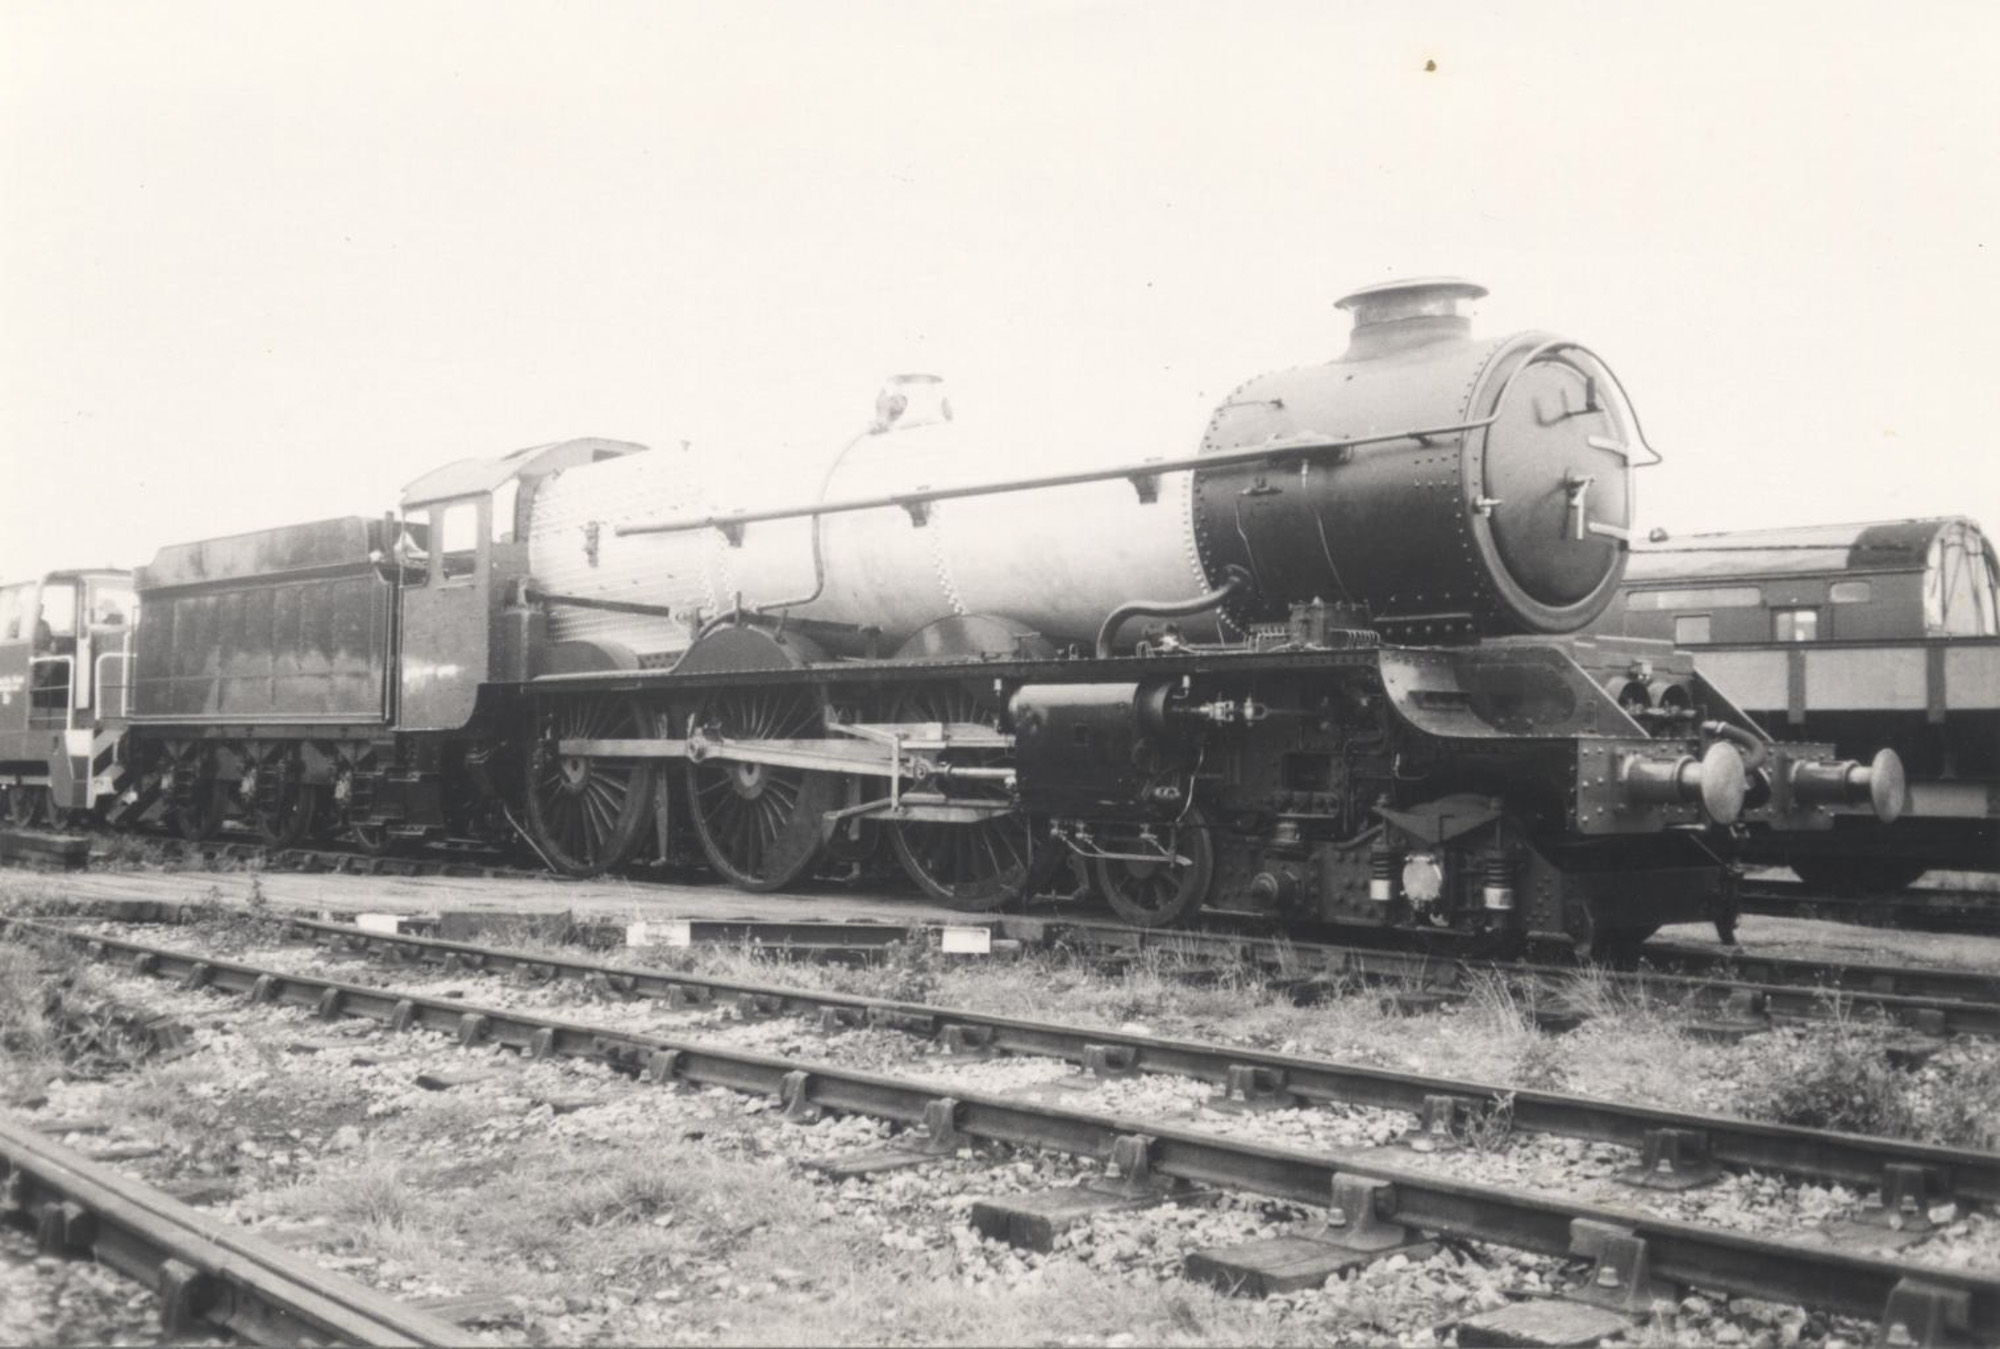 No. 6024 nearing completion at Quainton, 1989. © Unknown, please contact us if you know the photographer